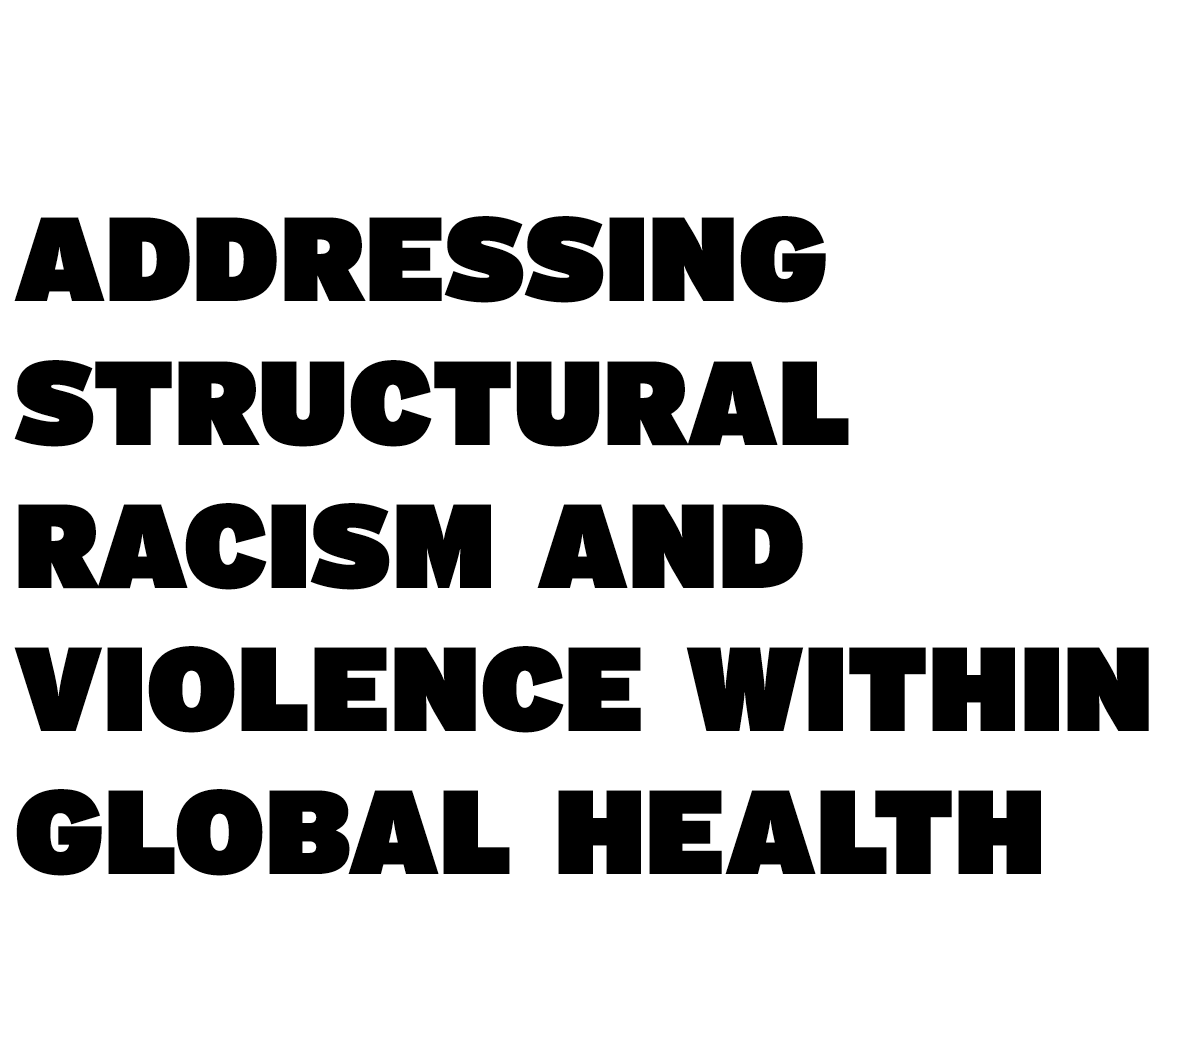 Addressing structural racism